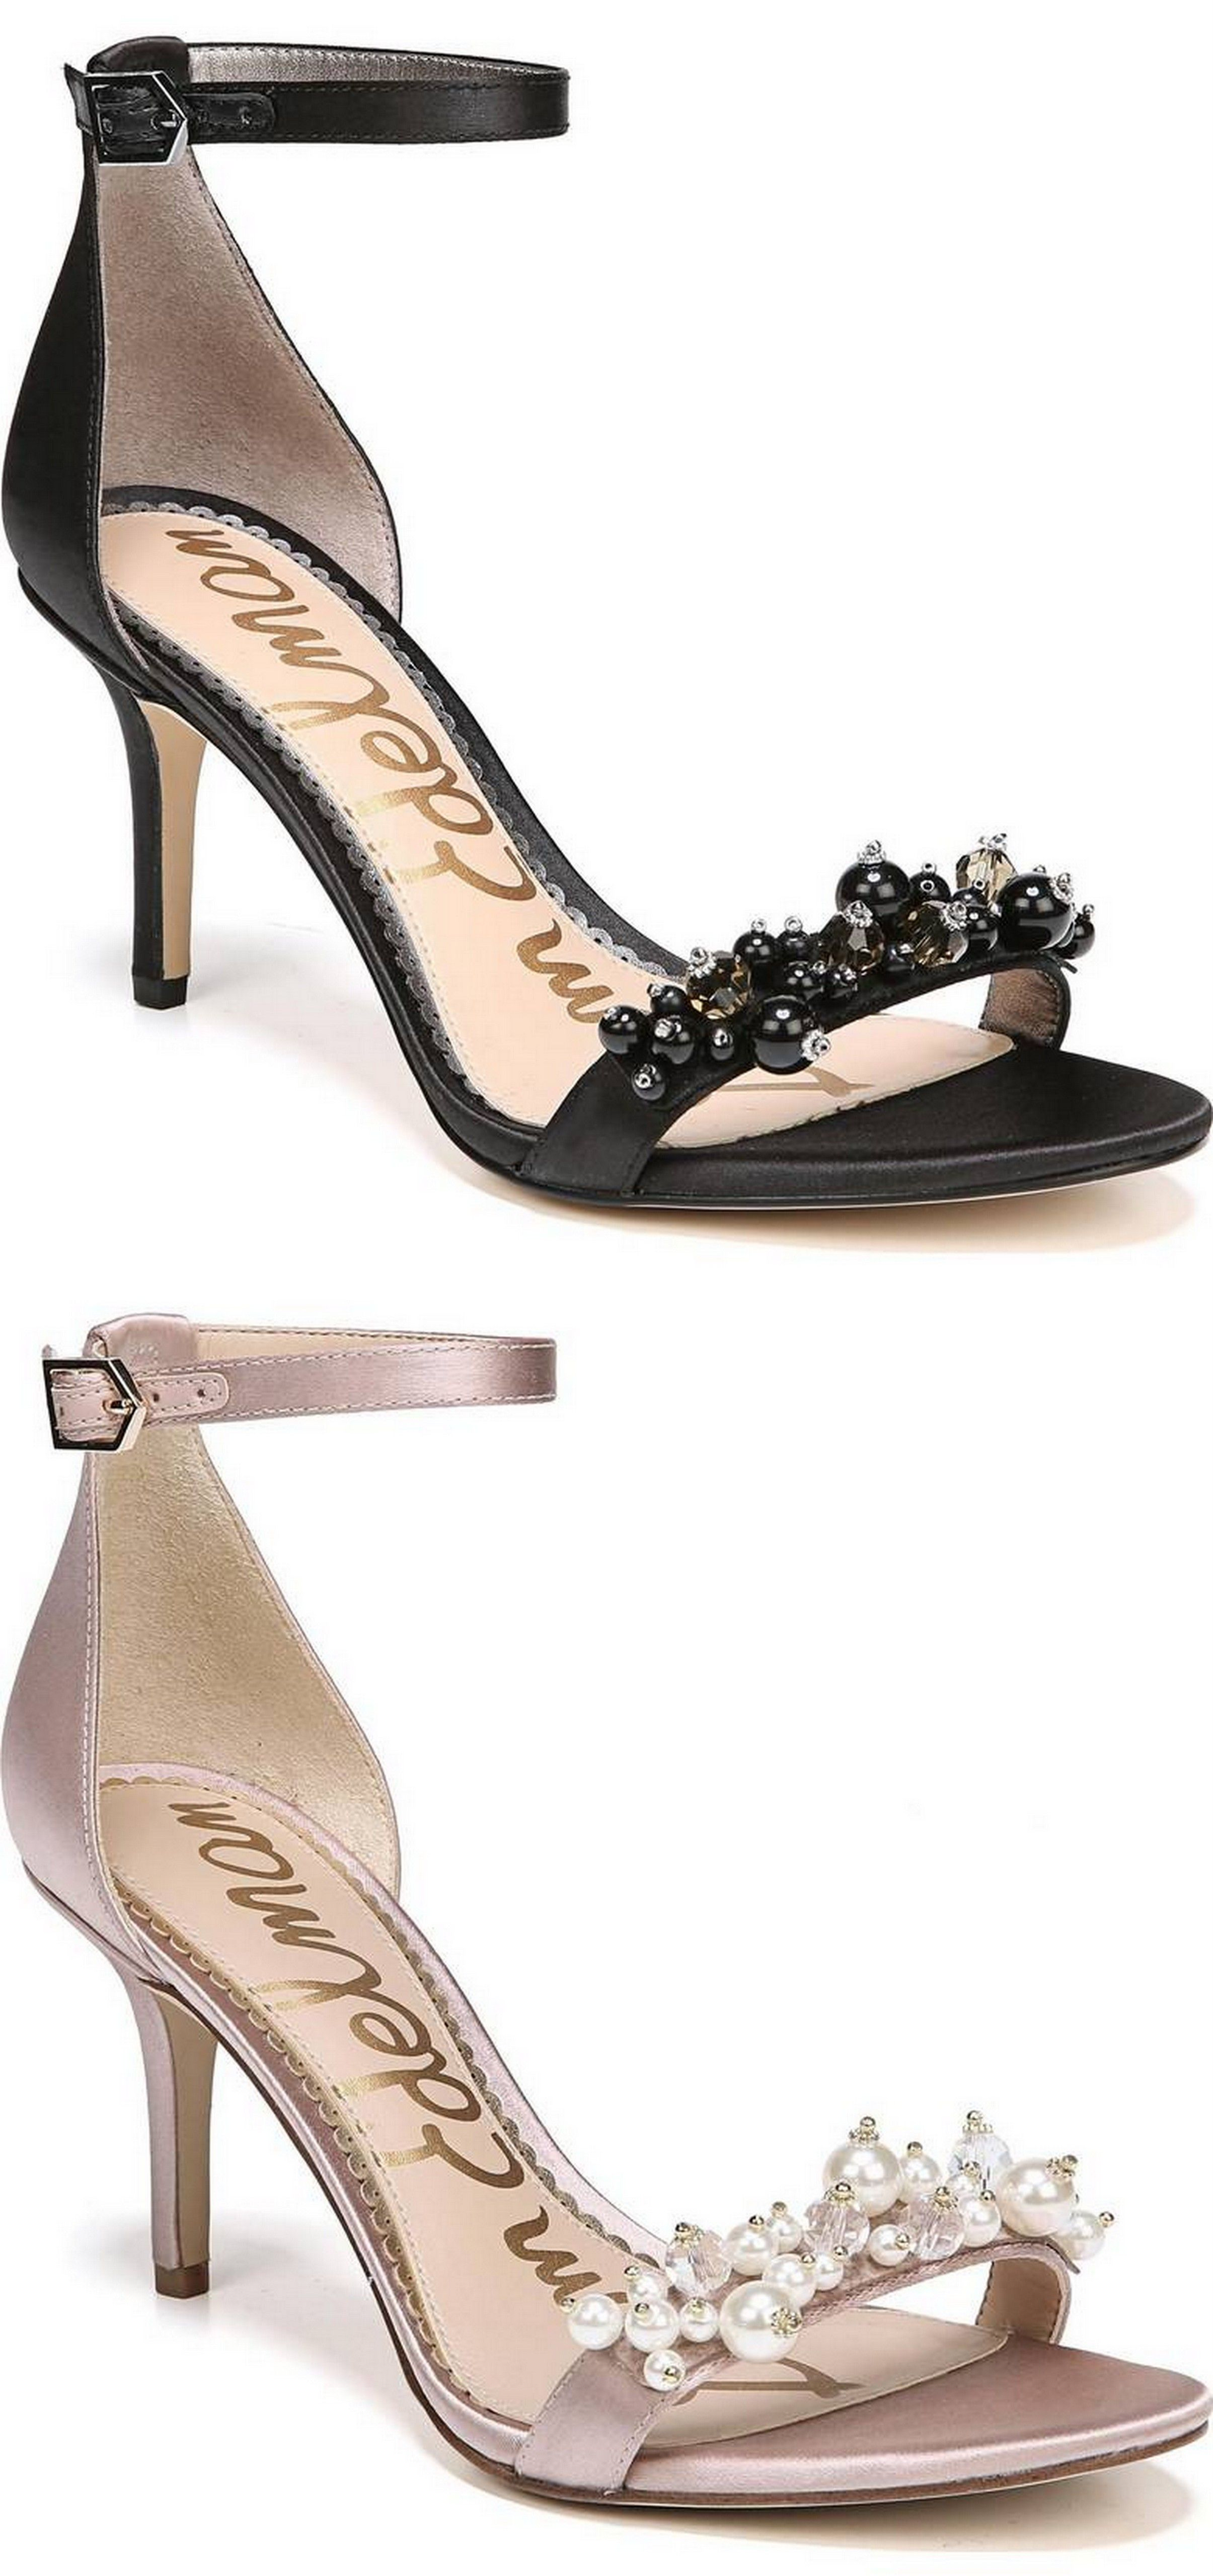 cd6dc0a368593d Platt Embellished Sandal I Love My Shoes